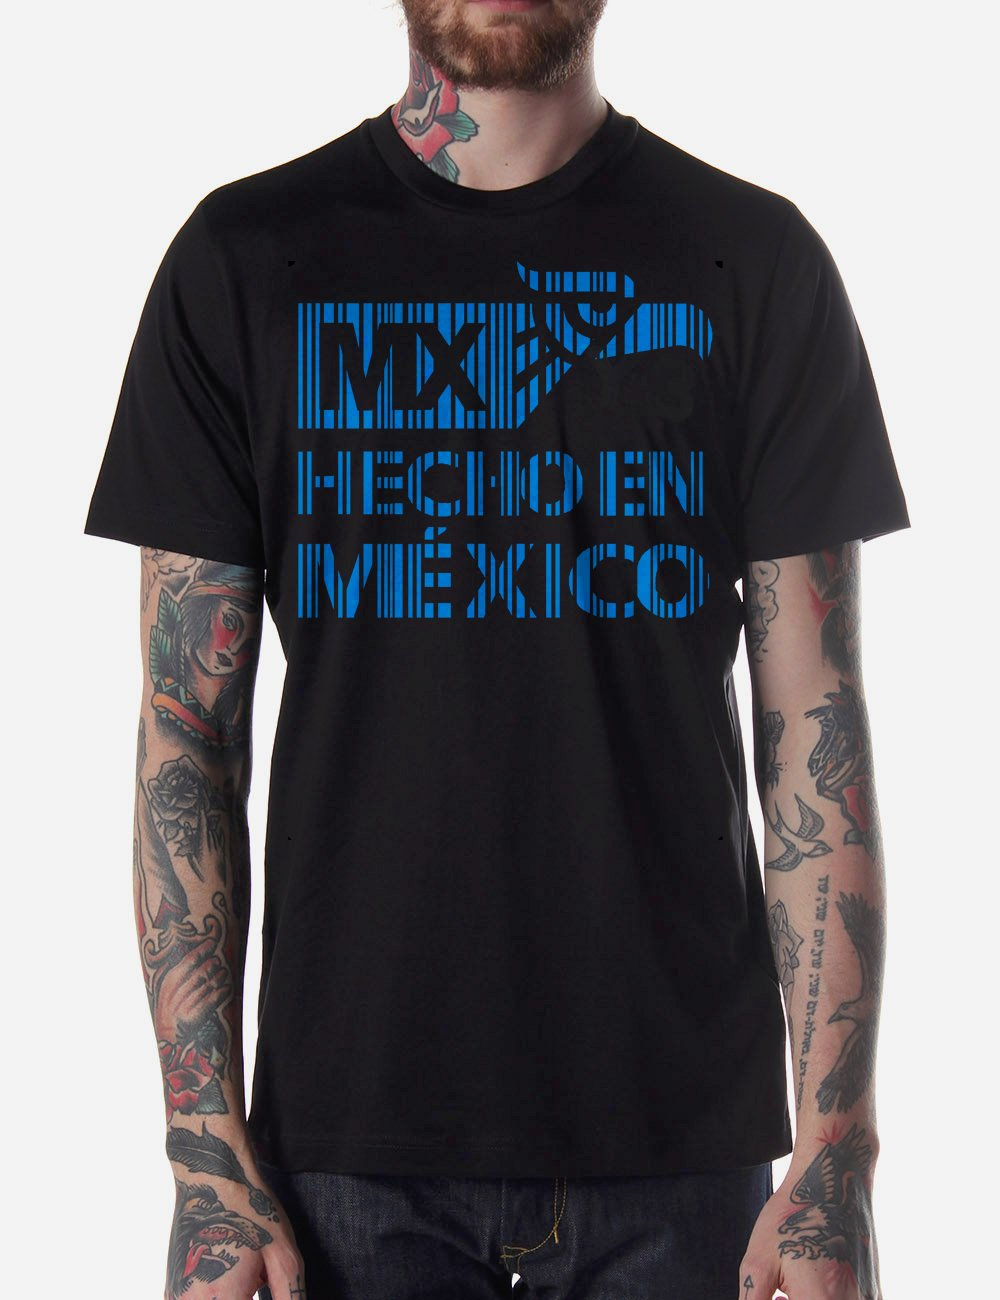 Black Men Tshirt Hecho en Mexico Black Tshirt For Men